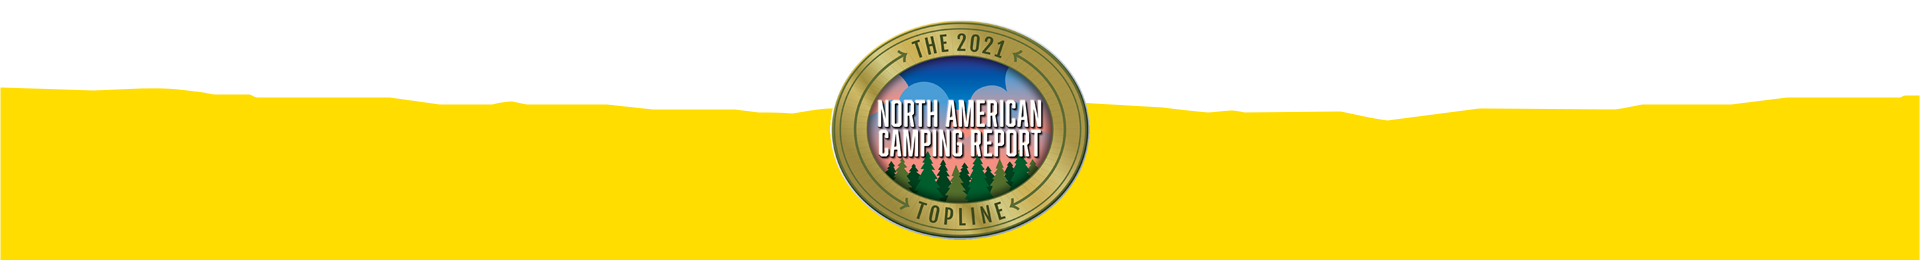 2021 North American Camping Report